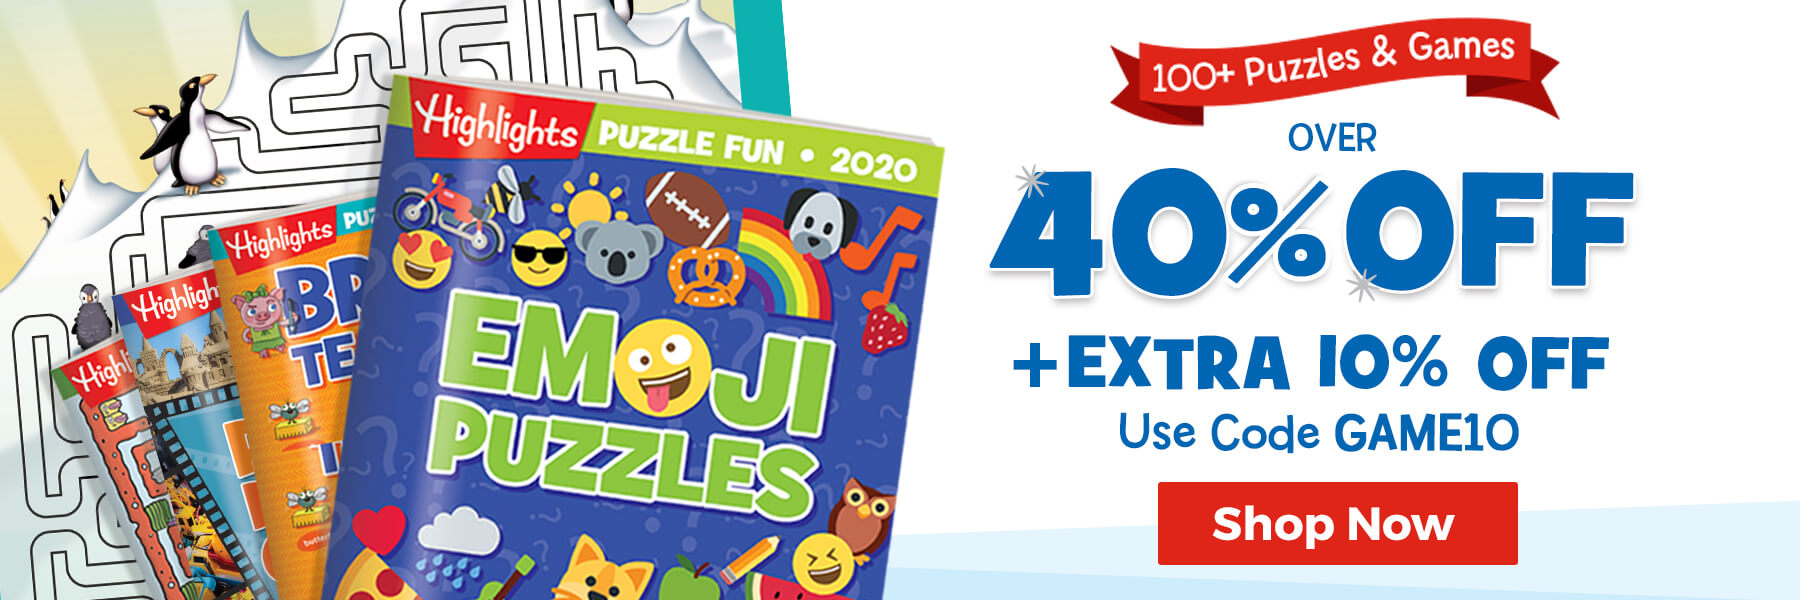 All puzzles & games are over 40% off – use code GAME10 to get an extra 10% off!